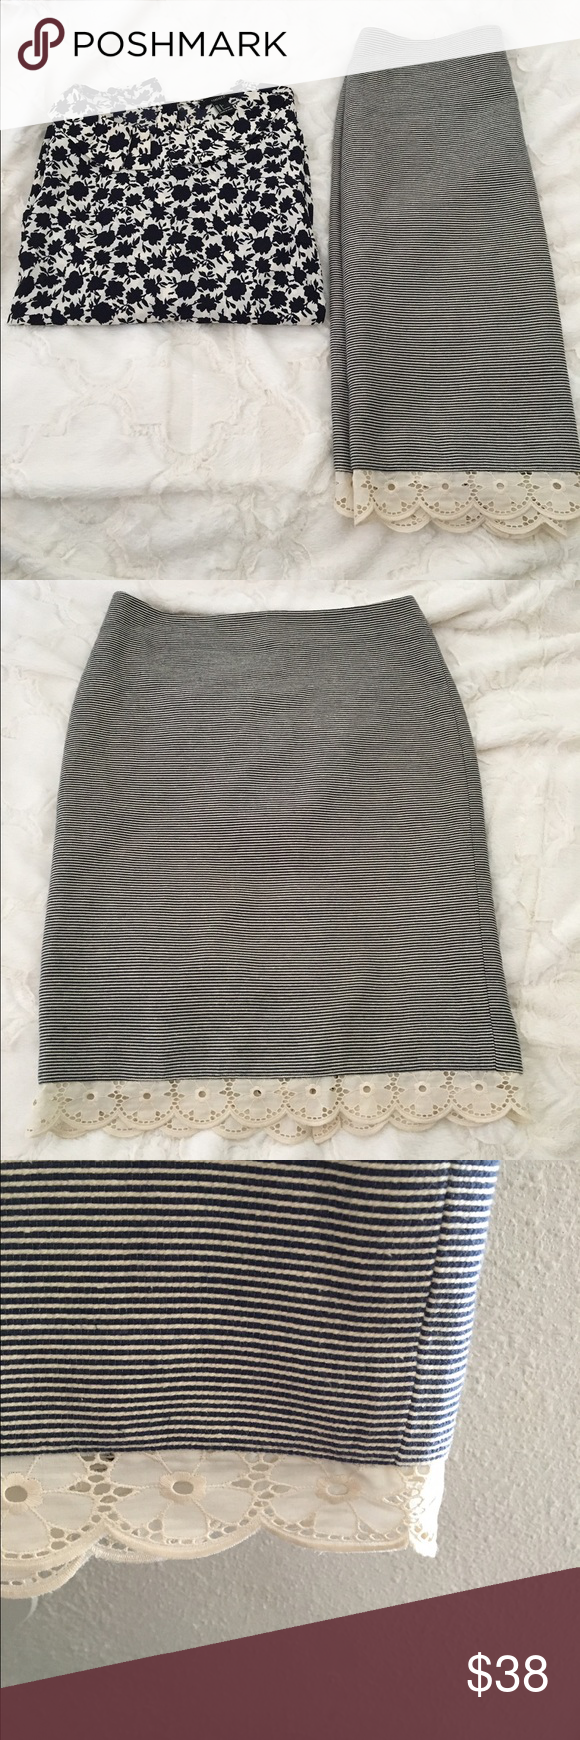 Pinstripe pencil skirt with lace trim Cute and comfy pencil skirt. Lace was added and the slit has been sewn down (see last pictures). In good condition. Approximately 25 inches long. 🔴 please no trade. Use offer button 🔴 Talbots Skirts Pencil